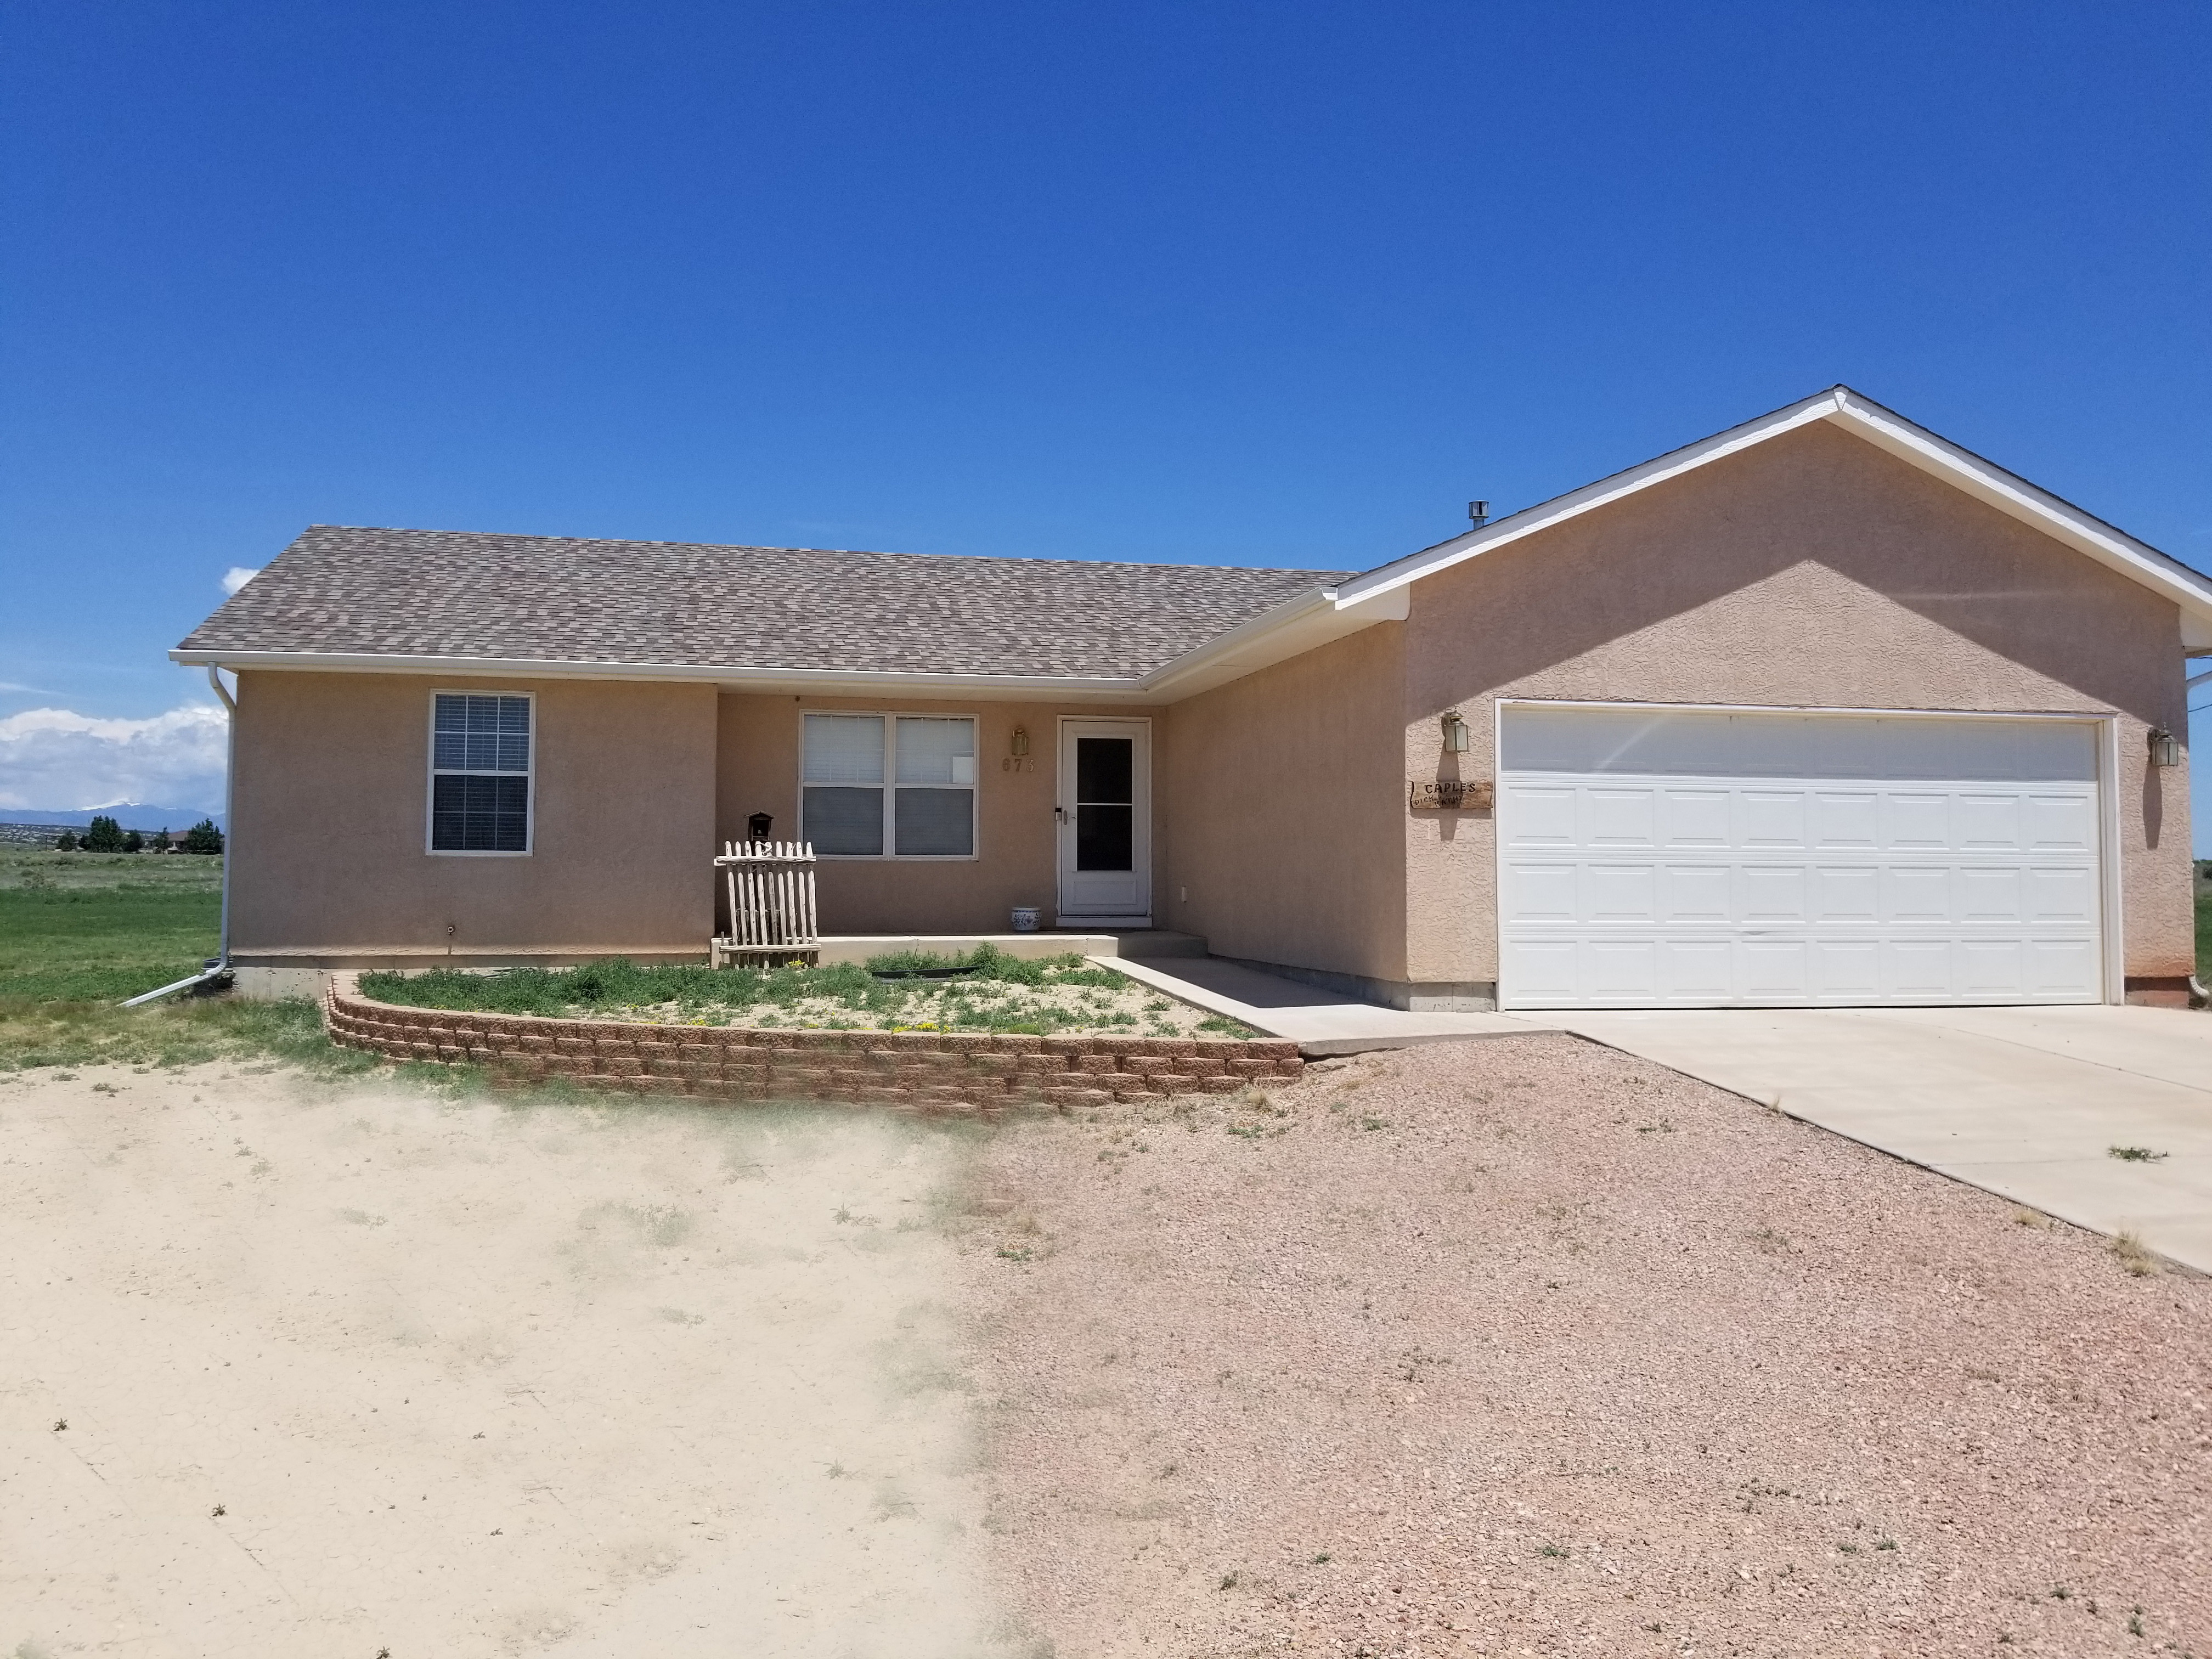 673 E Chelsea Dr, Pueblo West CO 81007